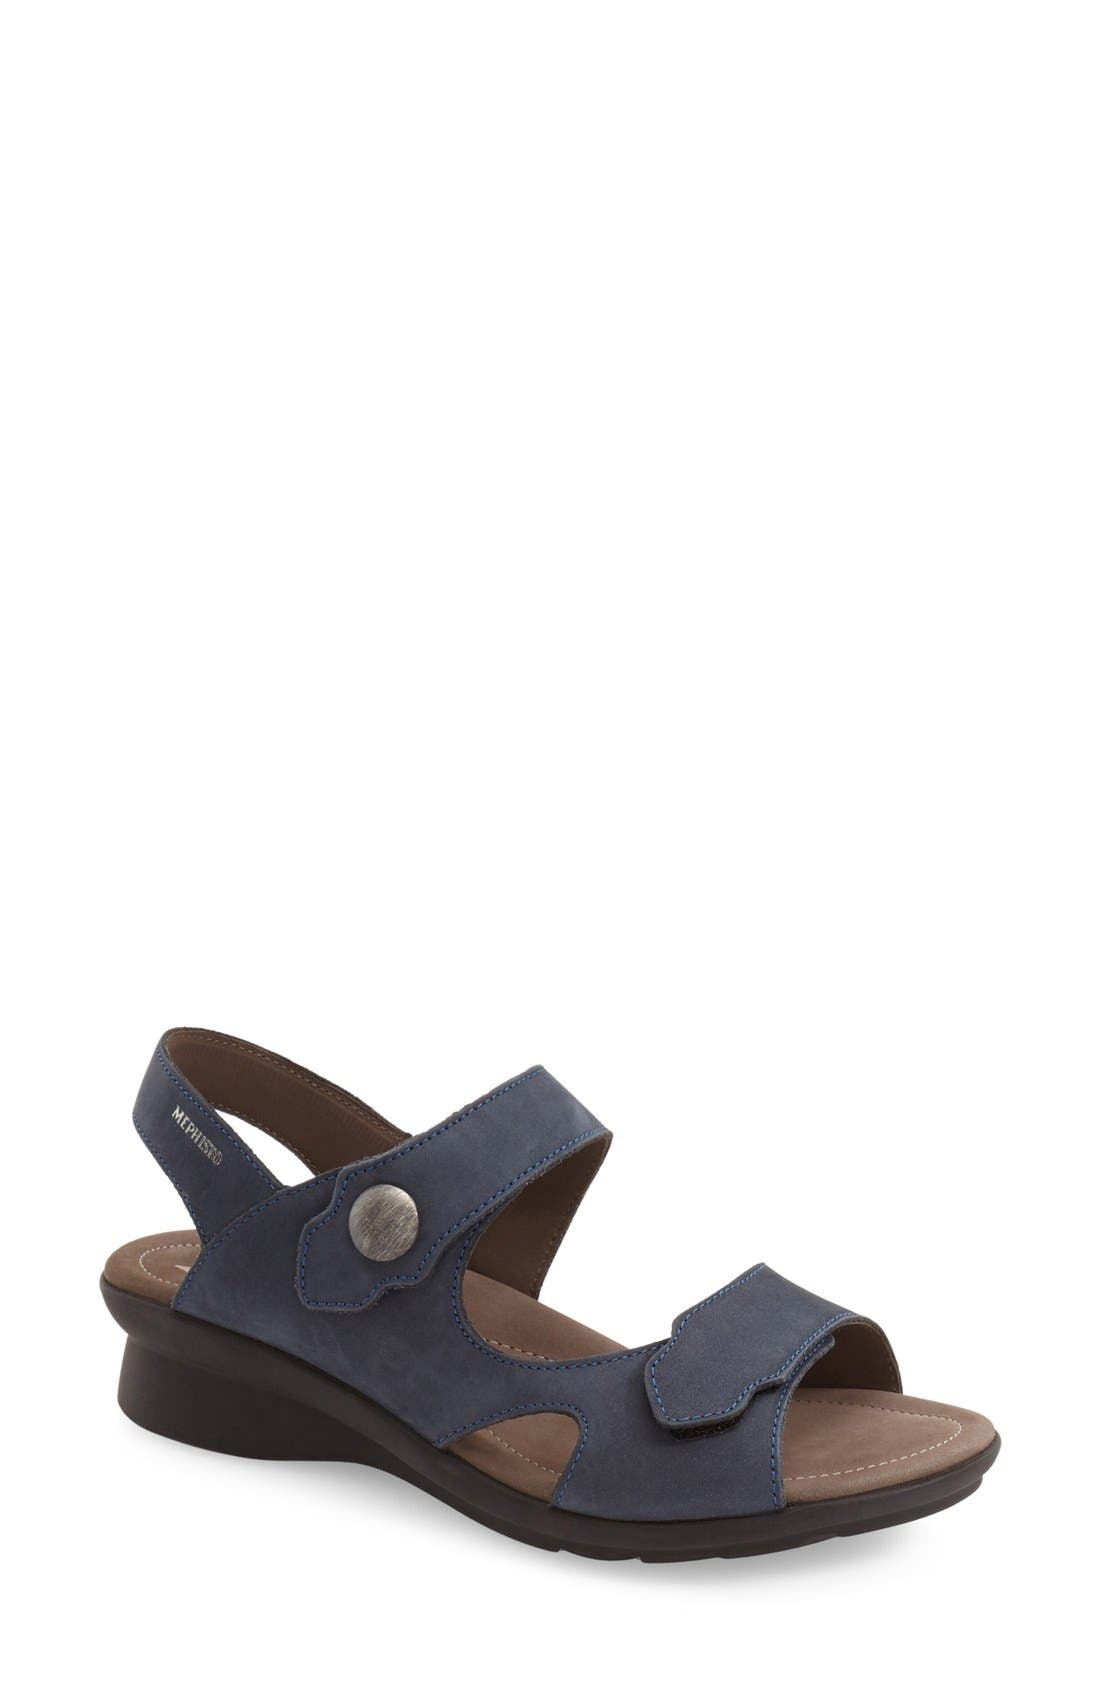 'Prudy' Leather Sandal,                             Main thumbnail 1, color,                             Navy Nubuck Leather